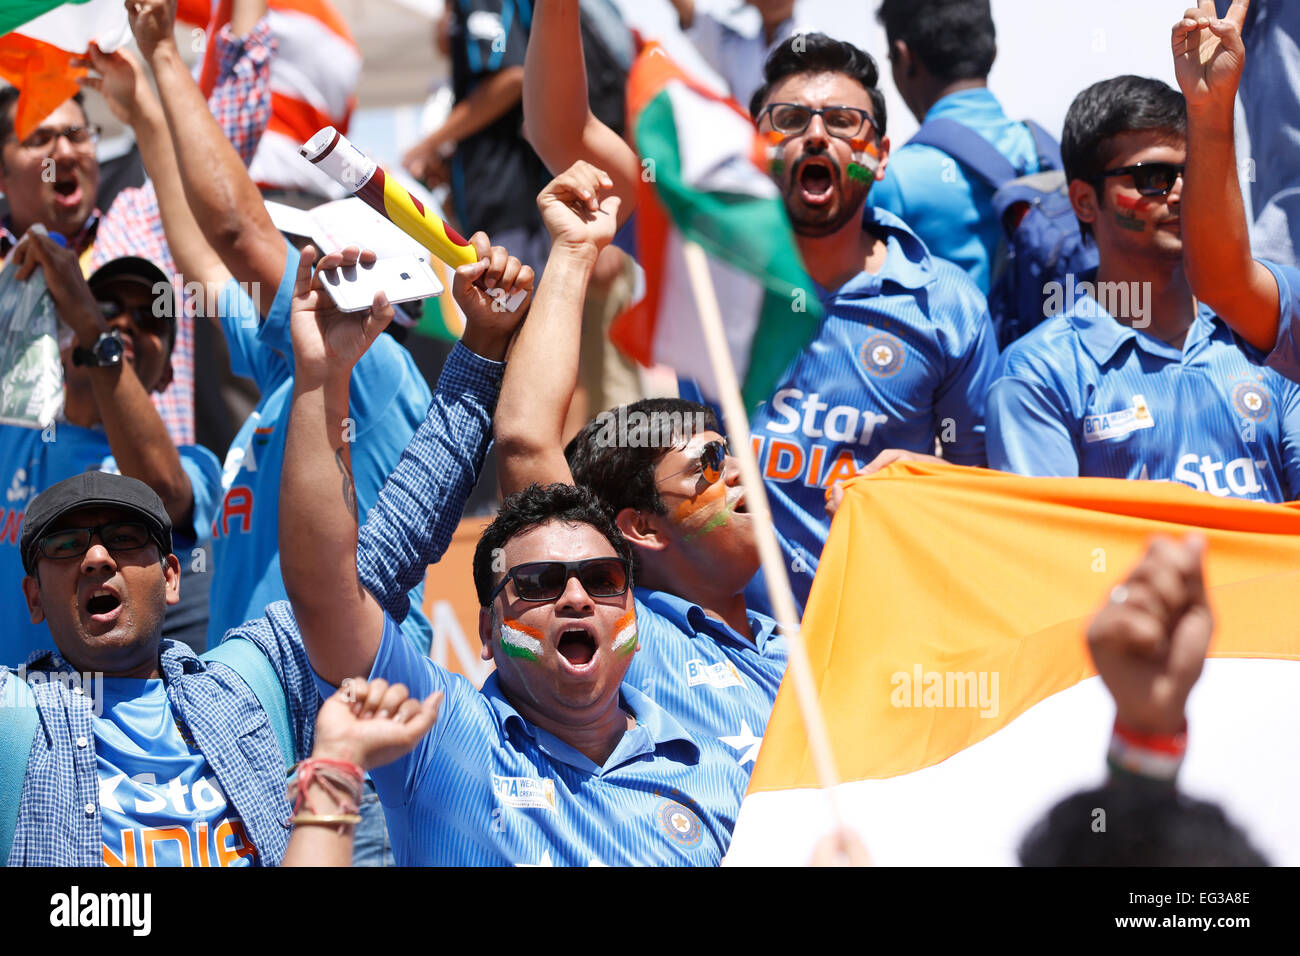 Indian cricket fans cheering the Indian team during a cricket match - Stock Image